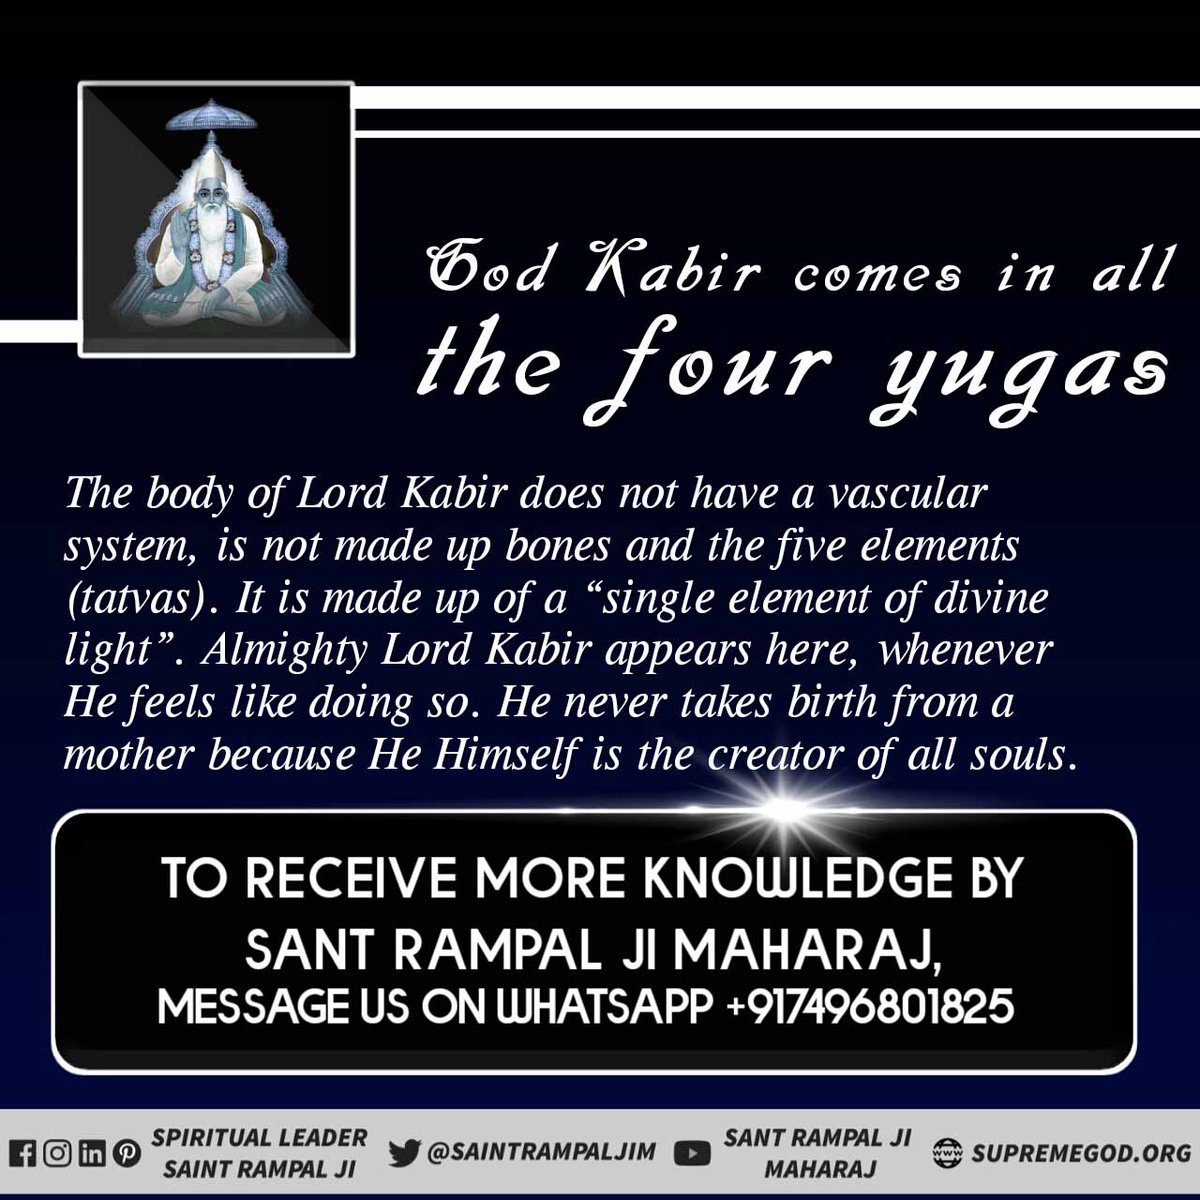 #SupremeGodKabir By doing scripture based devotion given by Saint Rampal Ji Maharaj Ji, an incarnation of the complete god Kabir Saheb, every person will be happy and the earth will become like heaven. -  @SaintRampalJiM